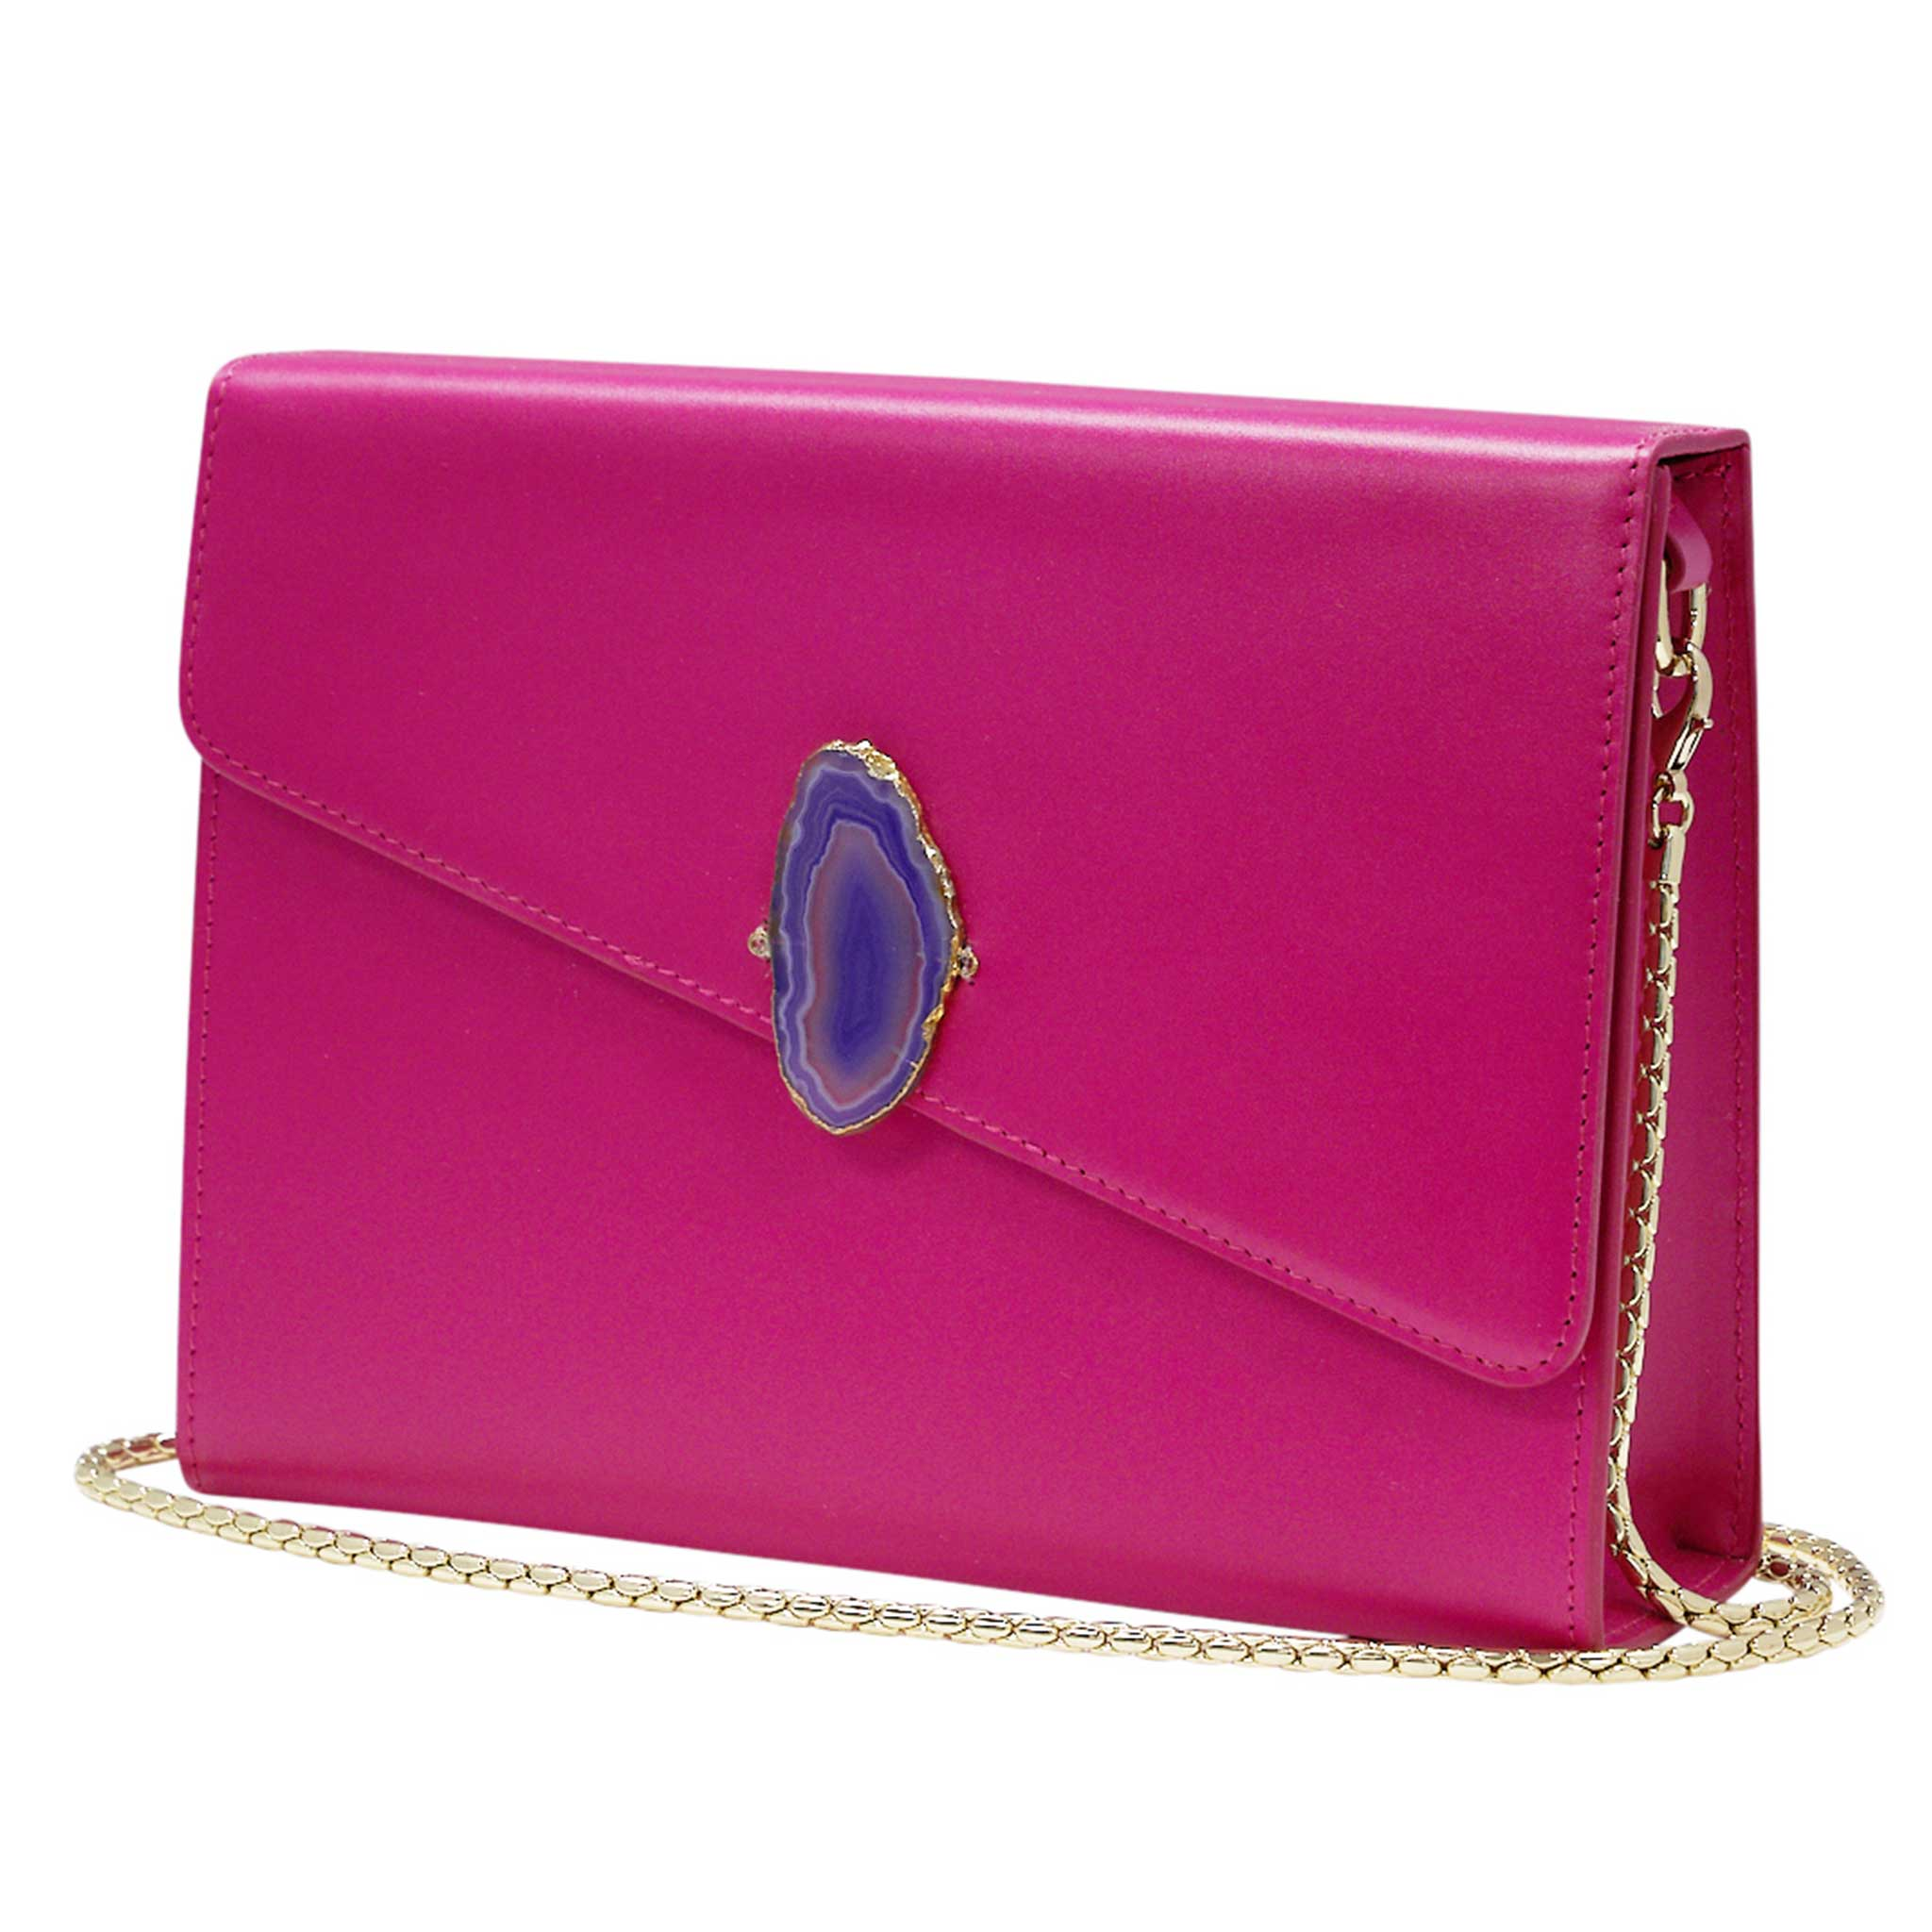 LOVED BAG - PINK RUBY LEATHER WITH PURPLE AGATE - 1.01.006.051